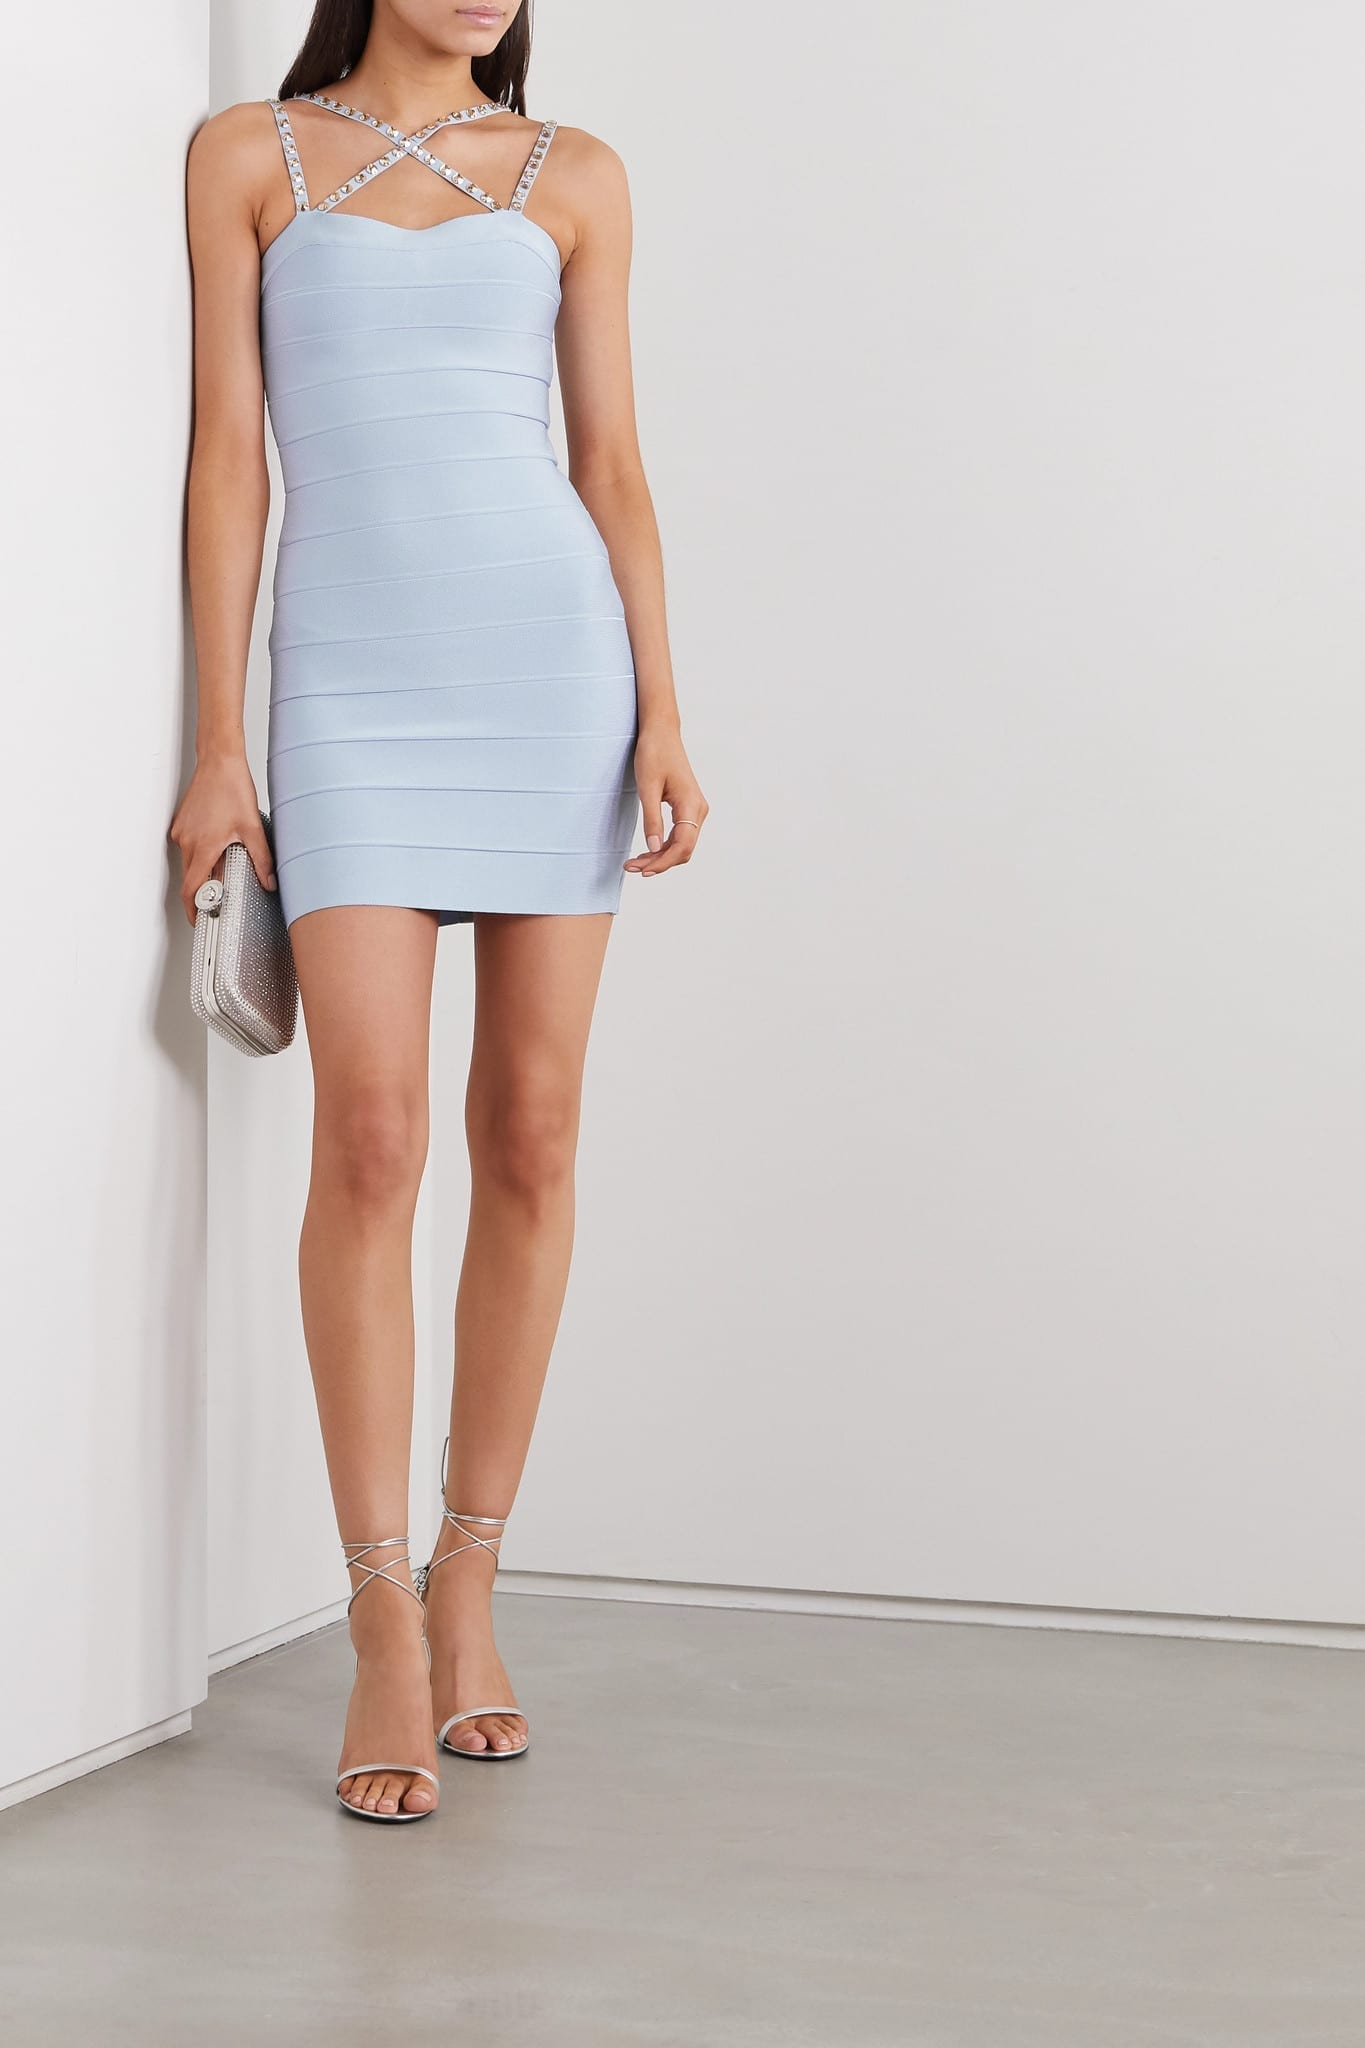 HERVÉ LÉGER Swarovski Crystal-embellished Bandage Mini Dress